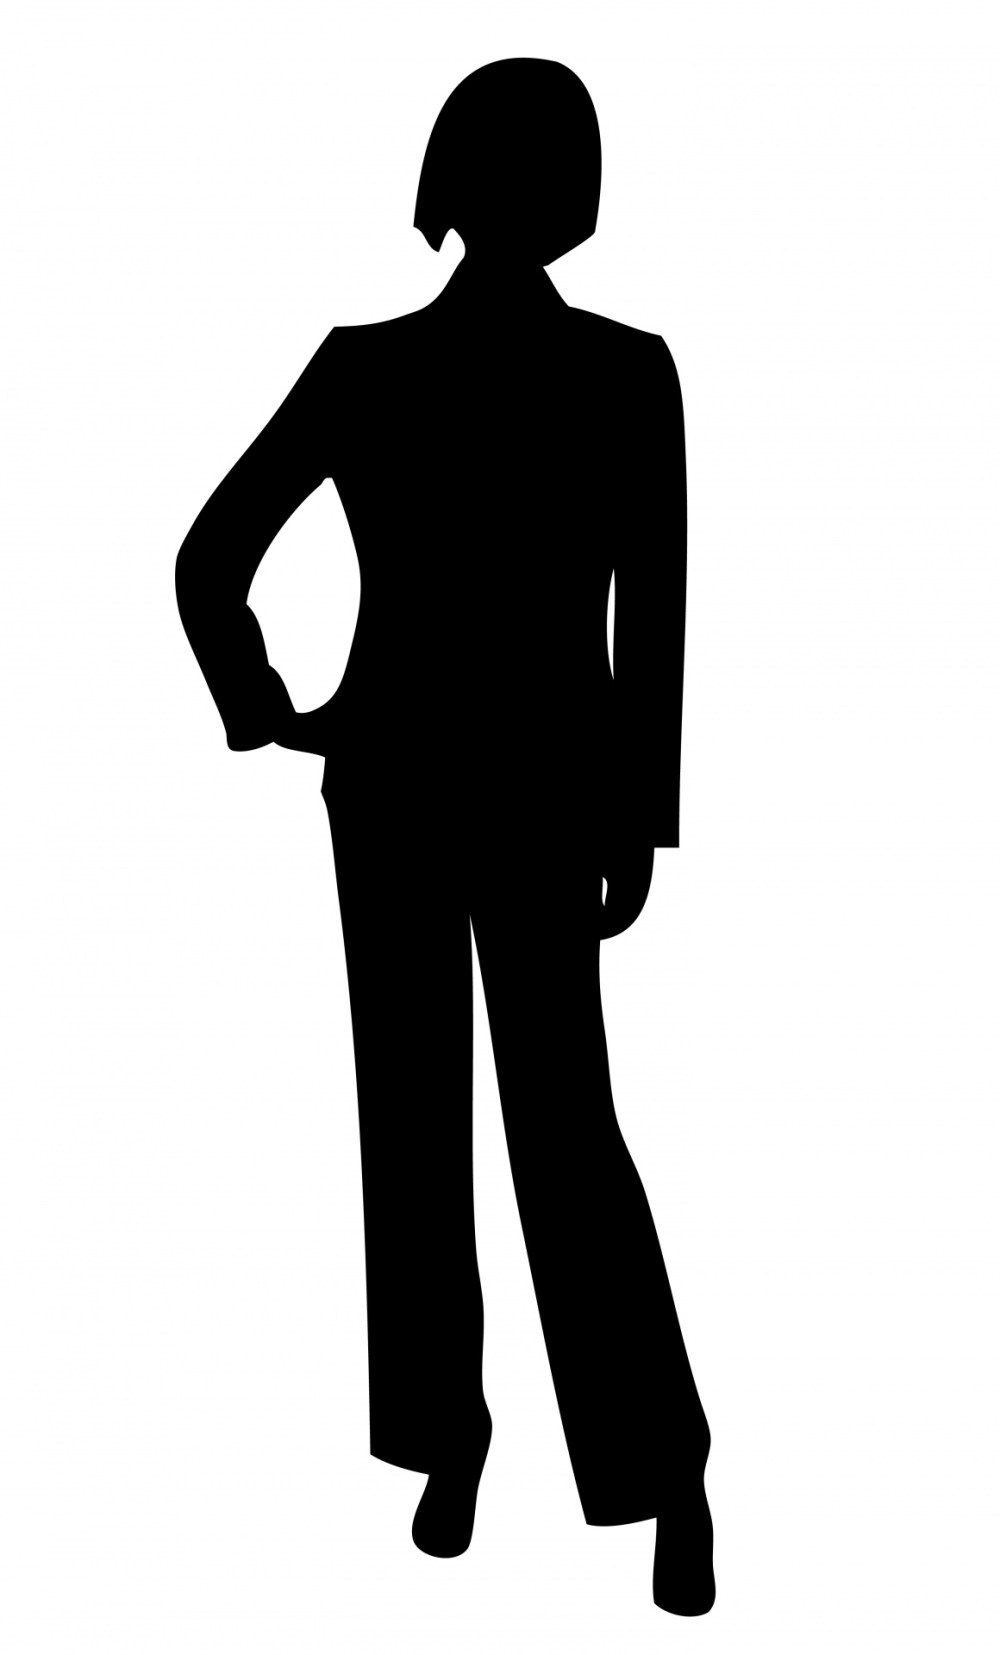 medium resolution of 1160x1920 business woman silhouette clipart free stock photo